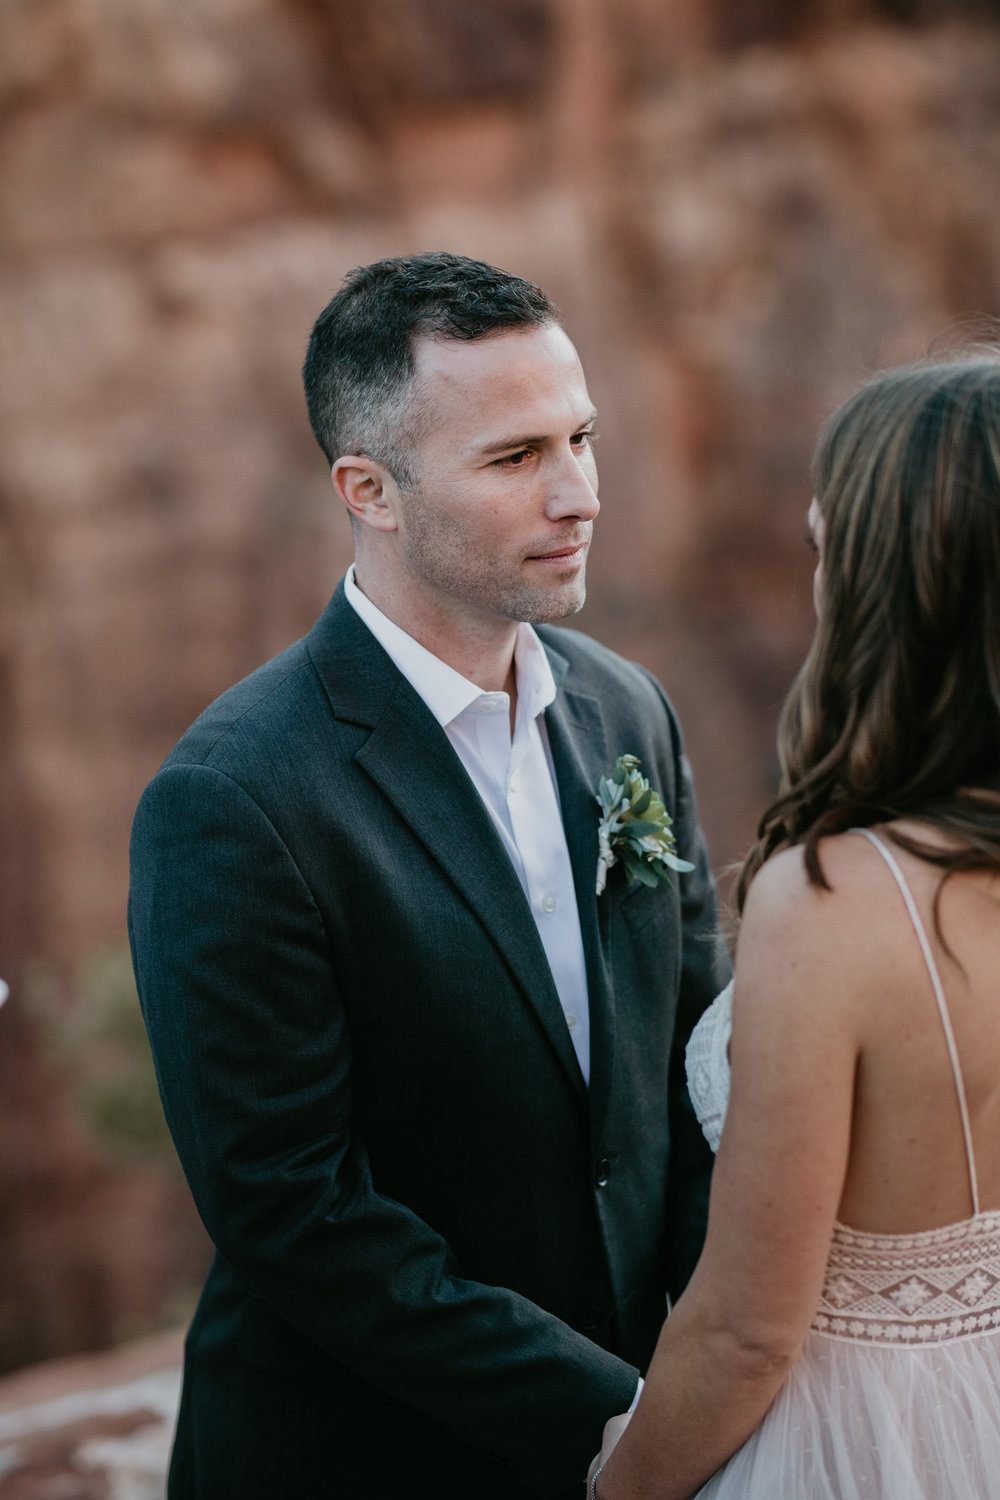 nicole-daacke-photography-zion-national-park-elopement-photographer-canyon-overlook-trail-elope-hiking-adventure-wedding-photos-fall-utah-red-rock-canyon-stgeorge-eloping-photographer-48.jpg